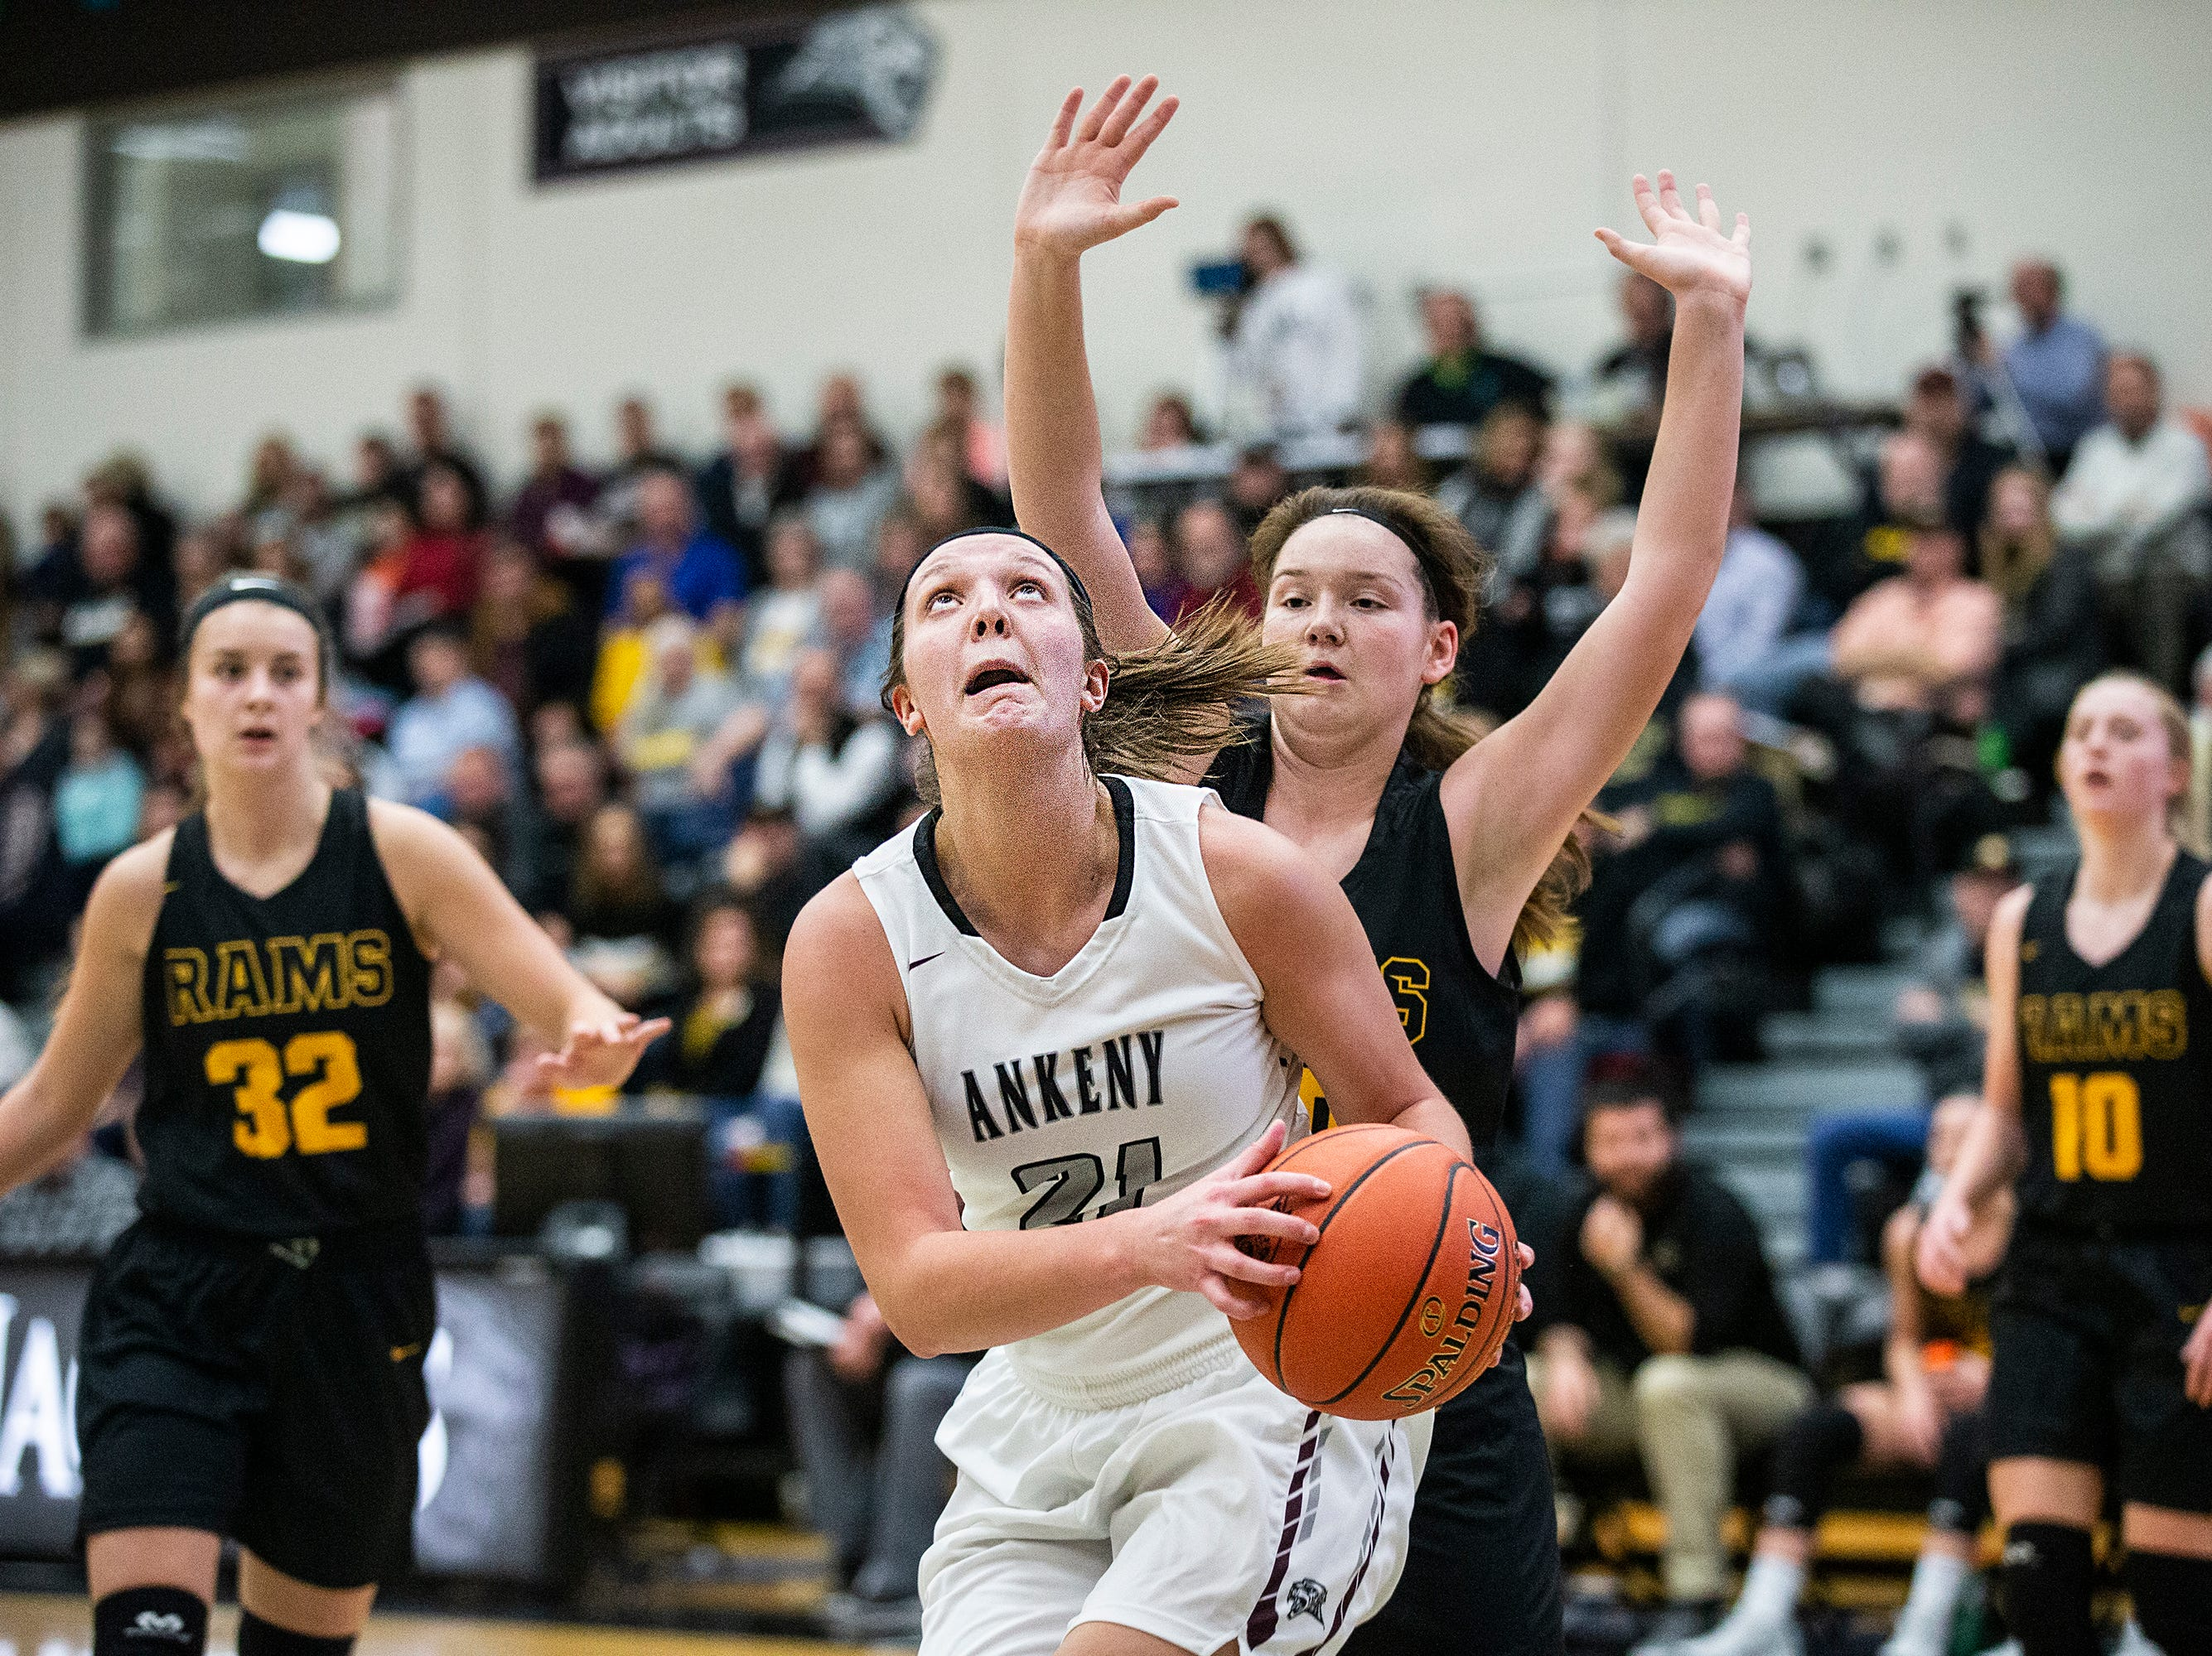 Centennial's Rachel Schon looks to shoot during the Southeast Polk vs. Ankeny Centennial girls' basketball game on Tuesday, Nov. 27, 2018, at Ankeny Centennial High School.